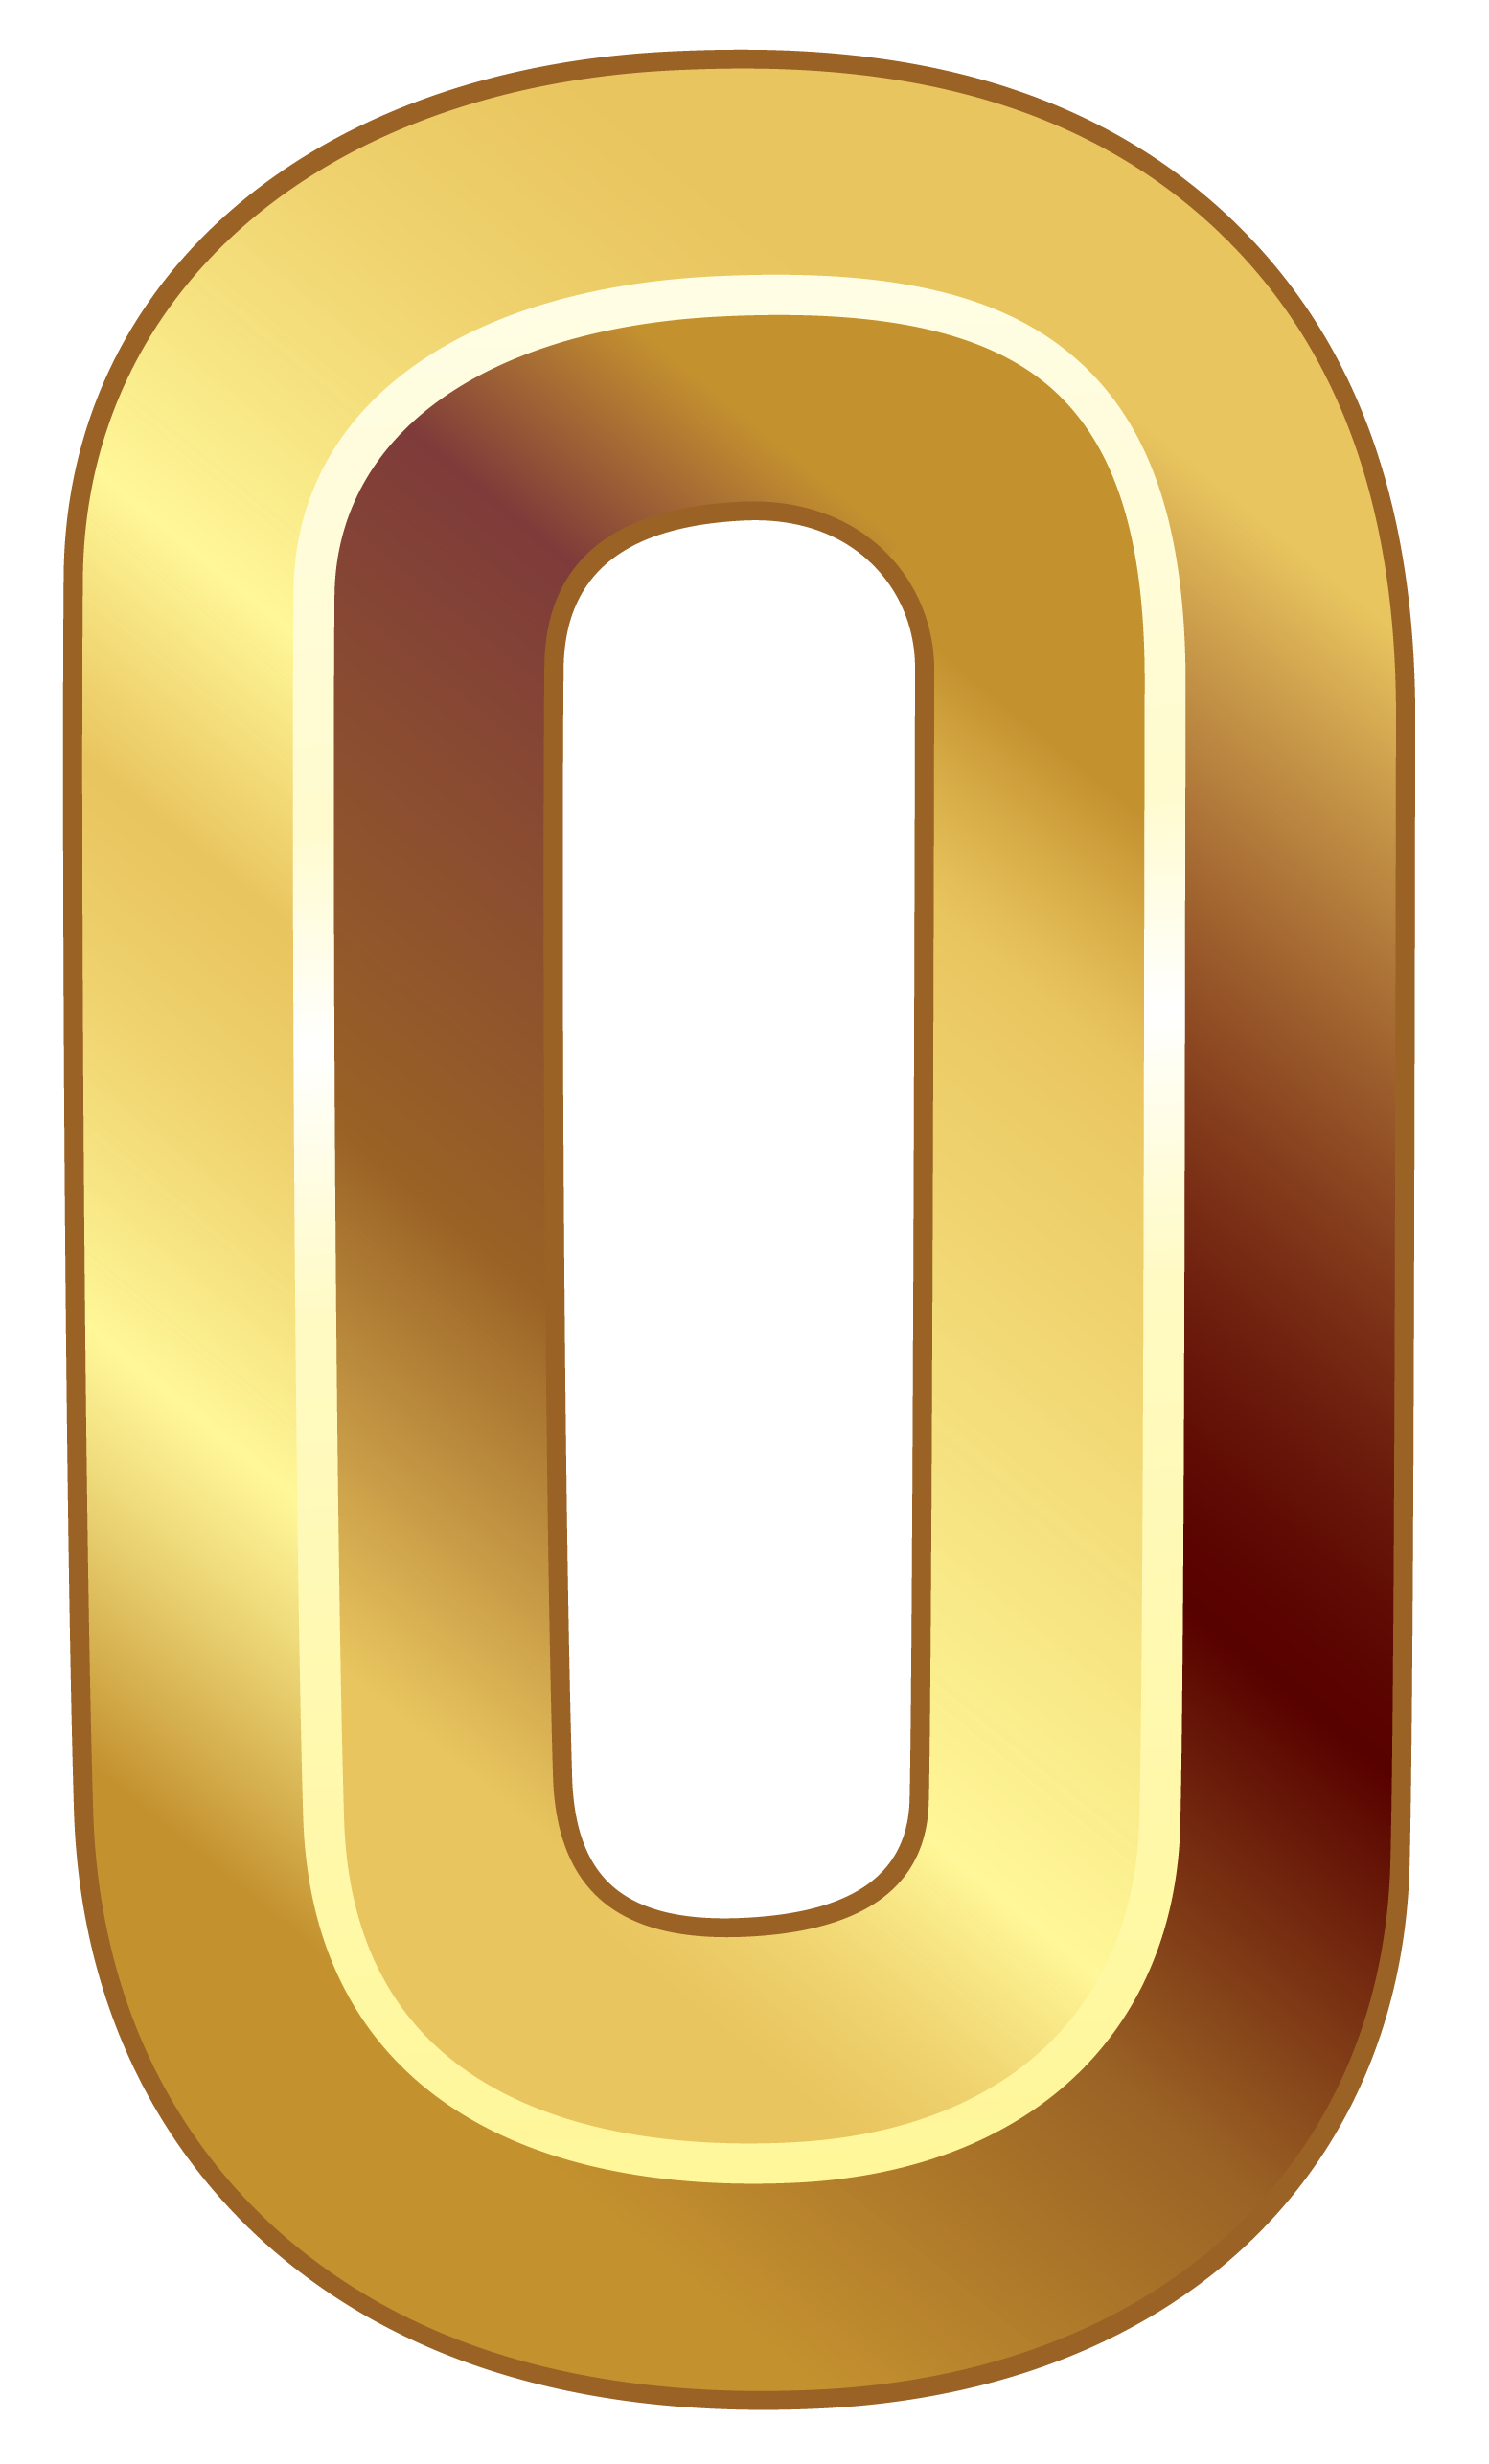 Number 1 clipart yellow. Gold zero png image